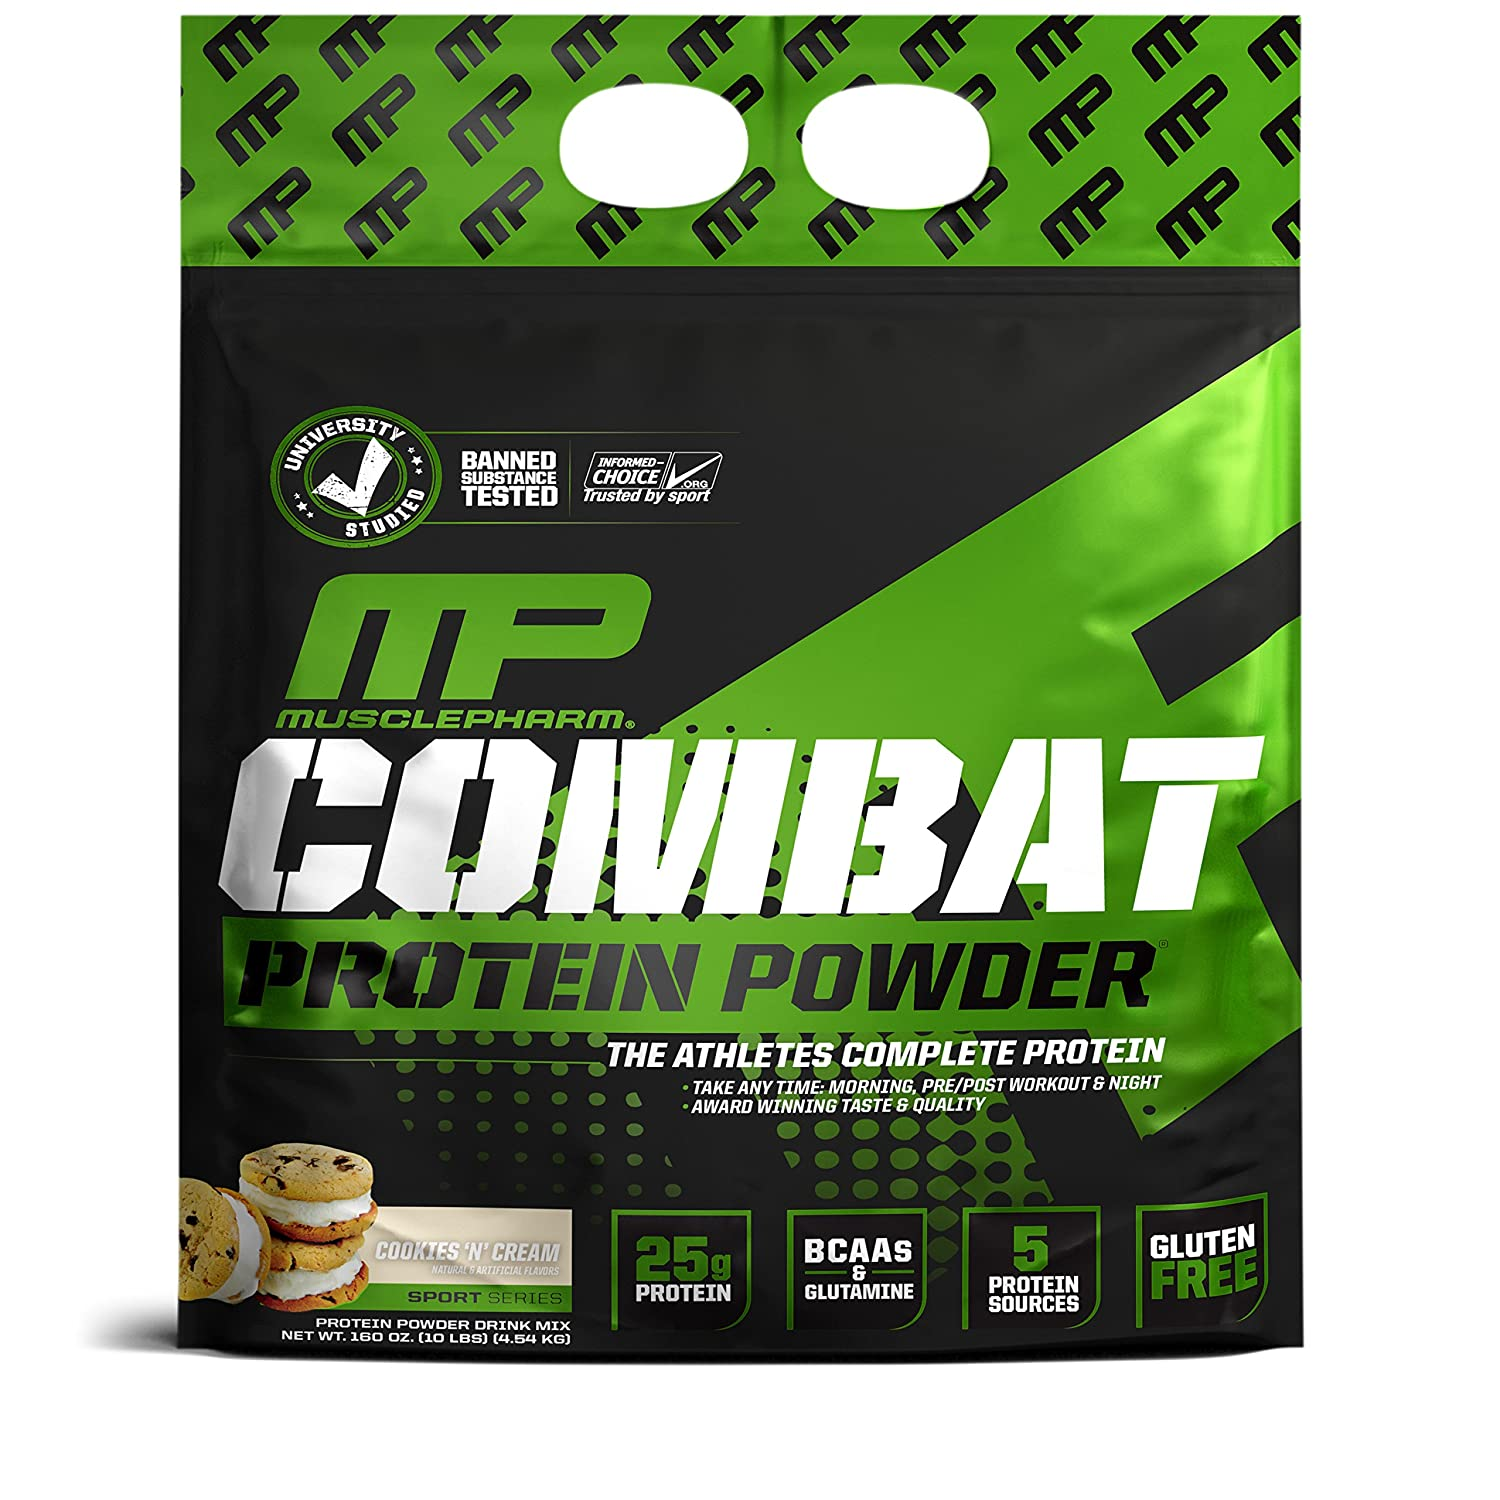 MusclePharm Combat Protein Powder – Essential blend of Whey, Isolate, Casein and Egg Protein with BCAA s and Glutamine for Recovery, Cookies N Cream, 10 Pound